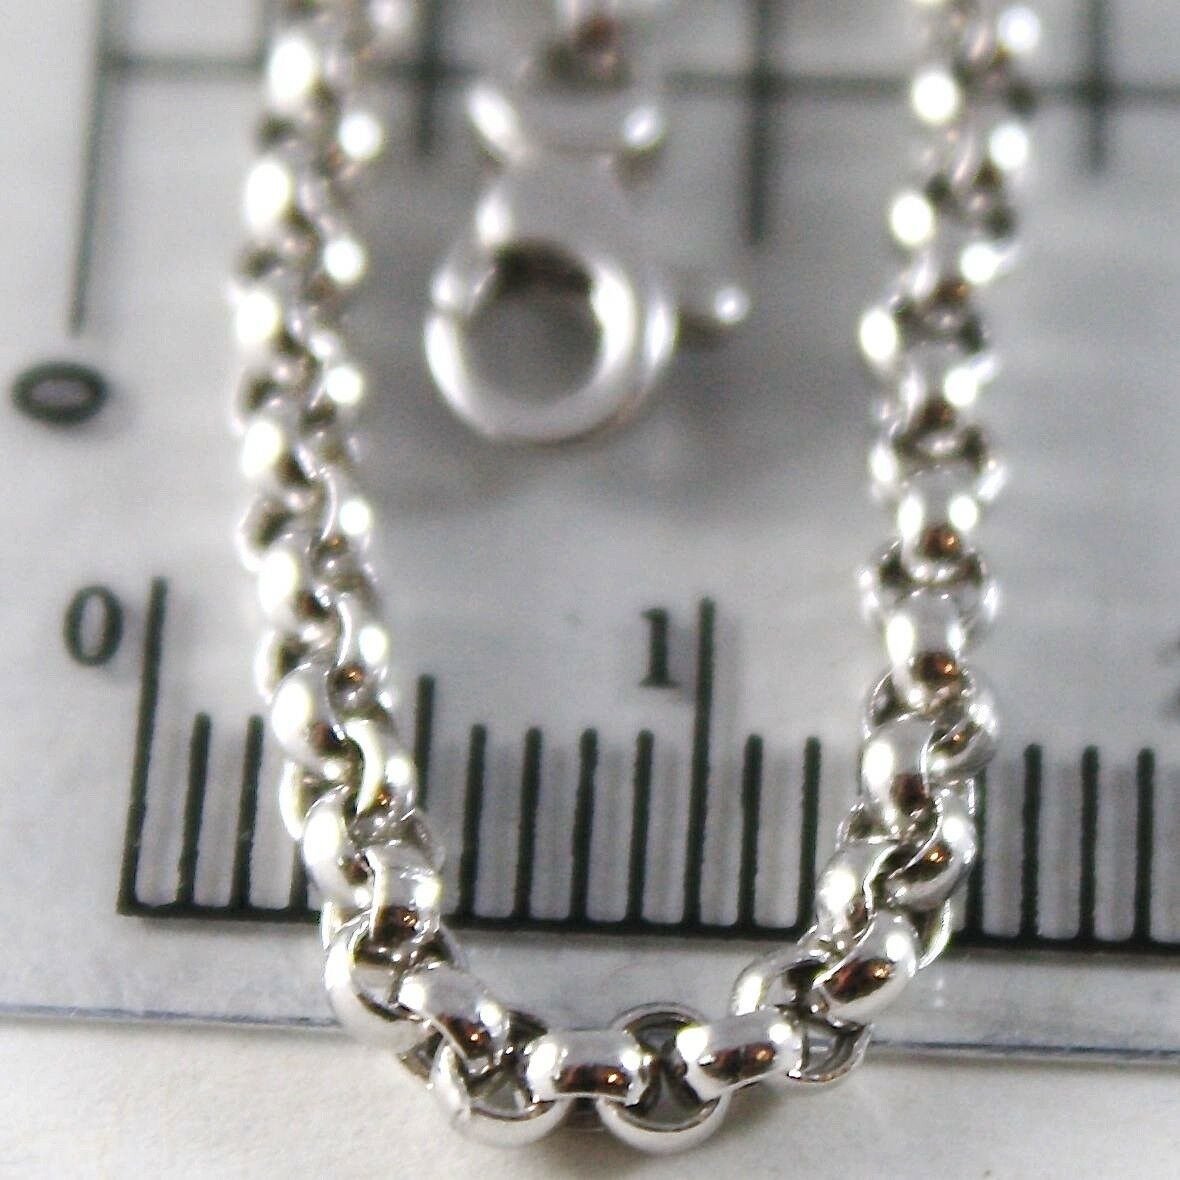 18K WHITE GOLD CHAIN 23.60 IN, DOME ROUND CIRCLE ROLO LINK 2.5 MM, MADE IN ITALY